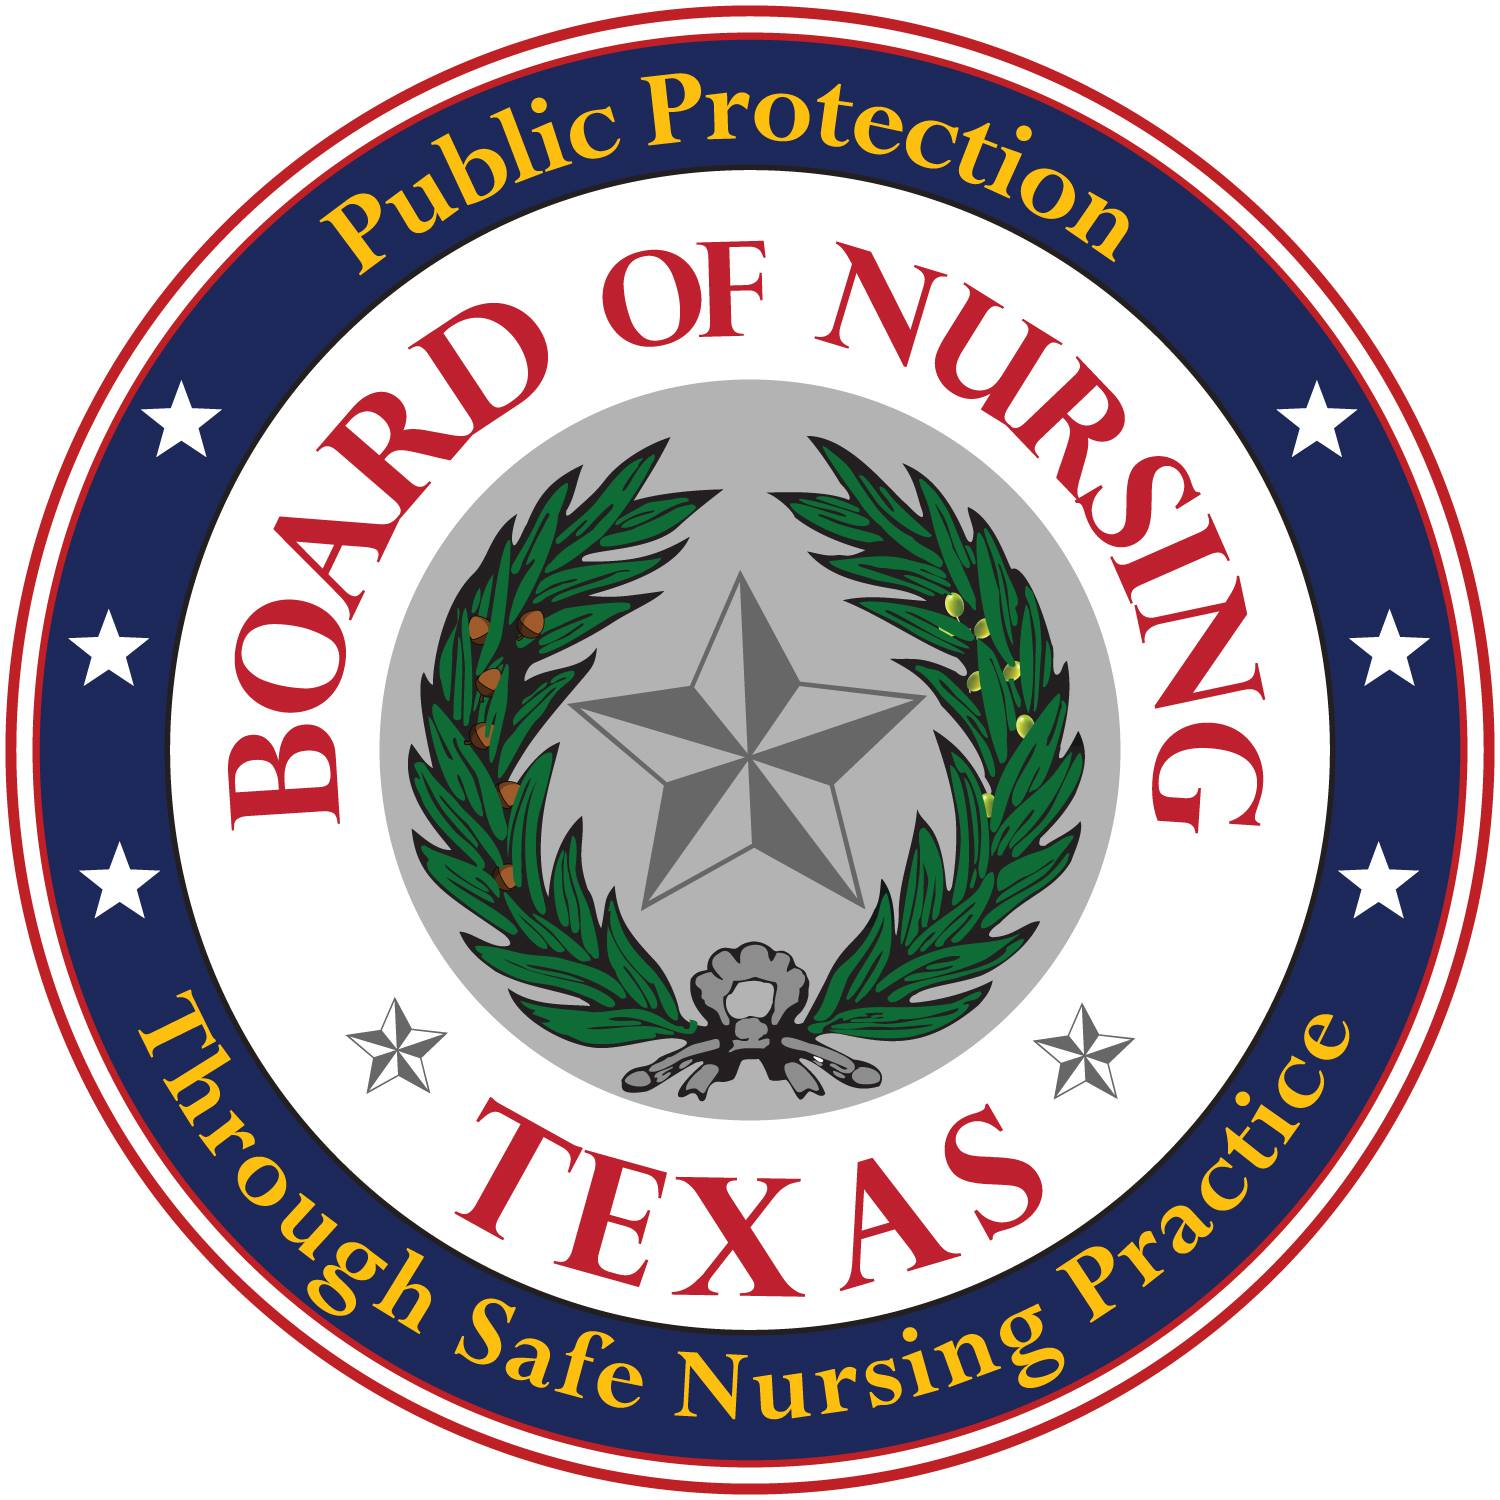 Texas Board of Nursing logo